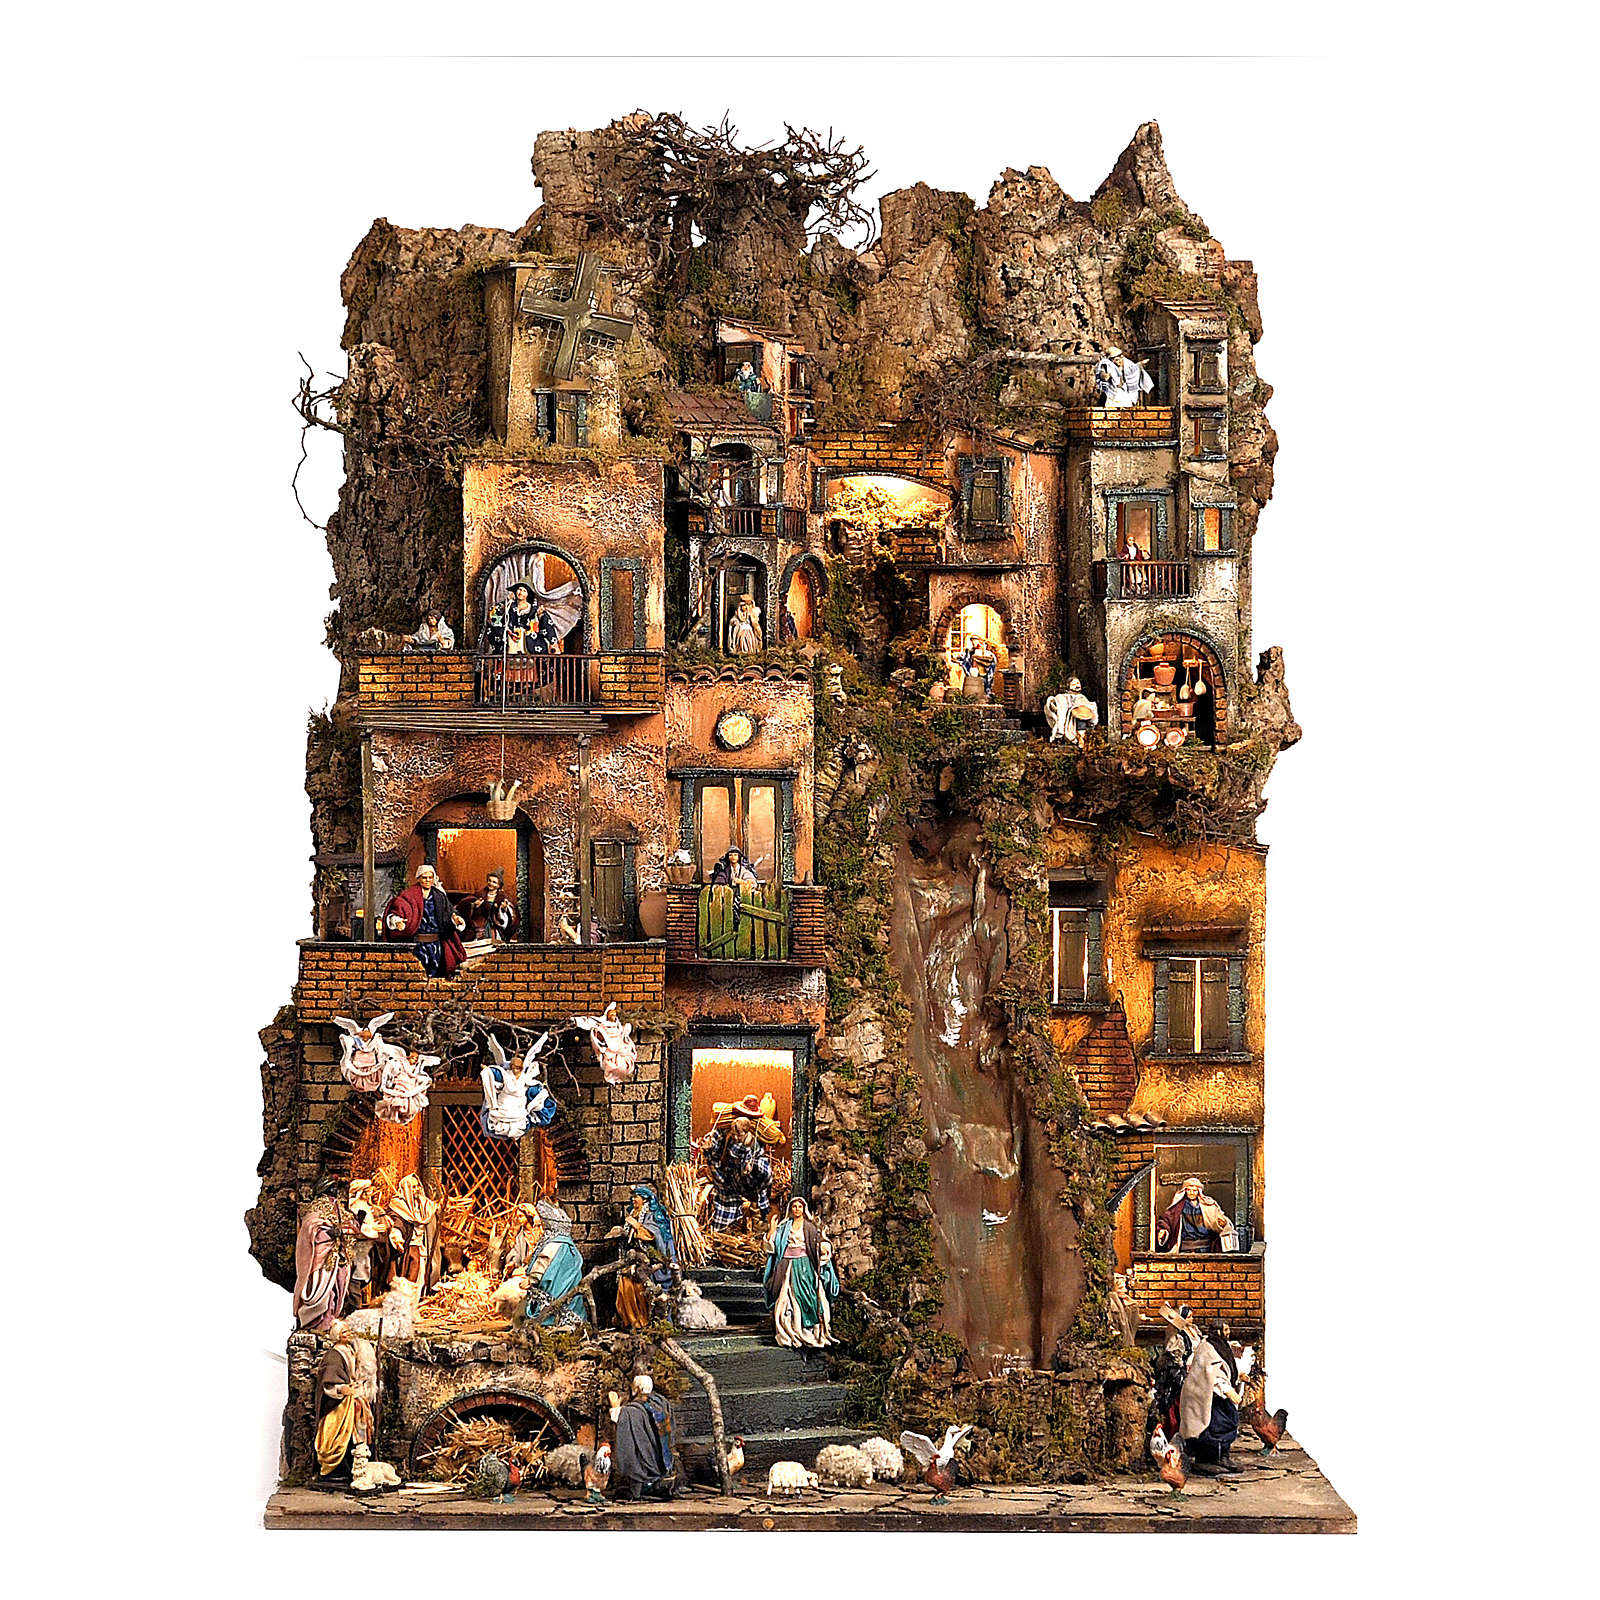 Village setting for Neapolitan Nativity scene 120x100x100 cm, module B, 34 shepherds, 7 movements - 14 cm 4